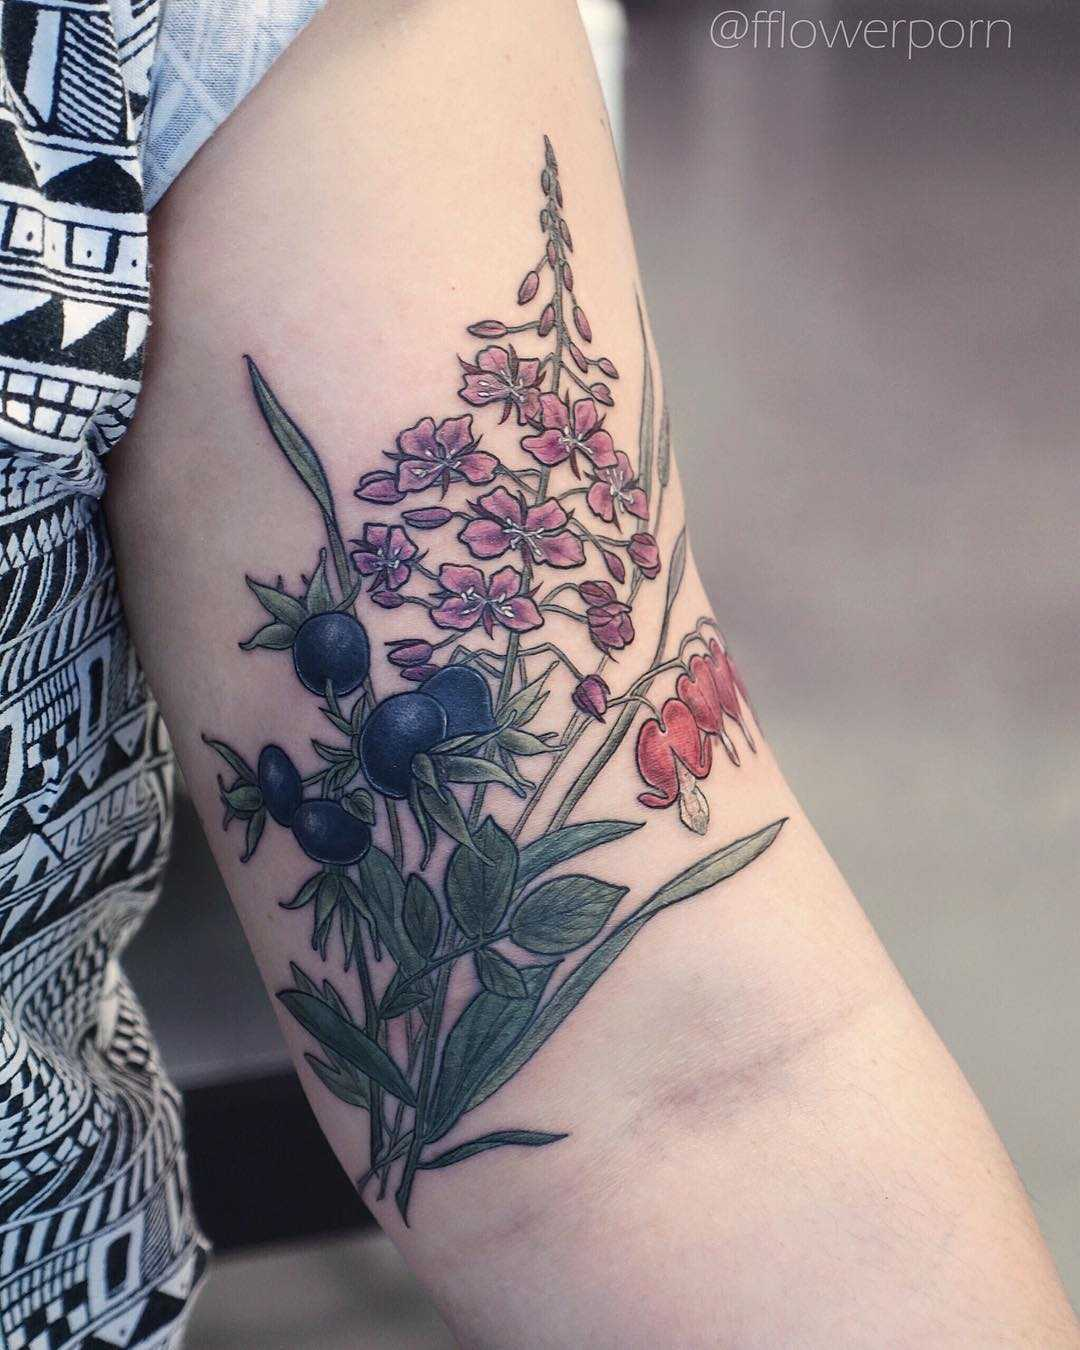 Willow herb timothy grass tattoo